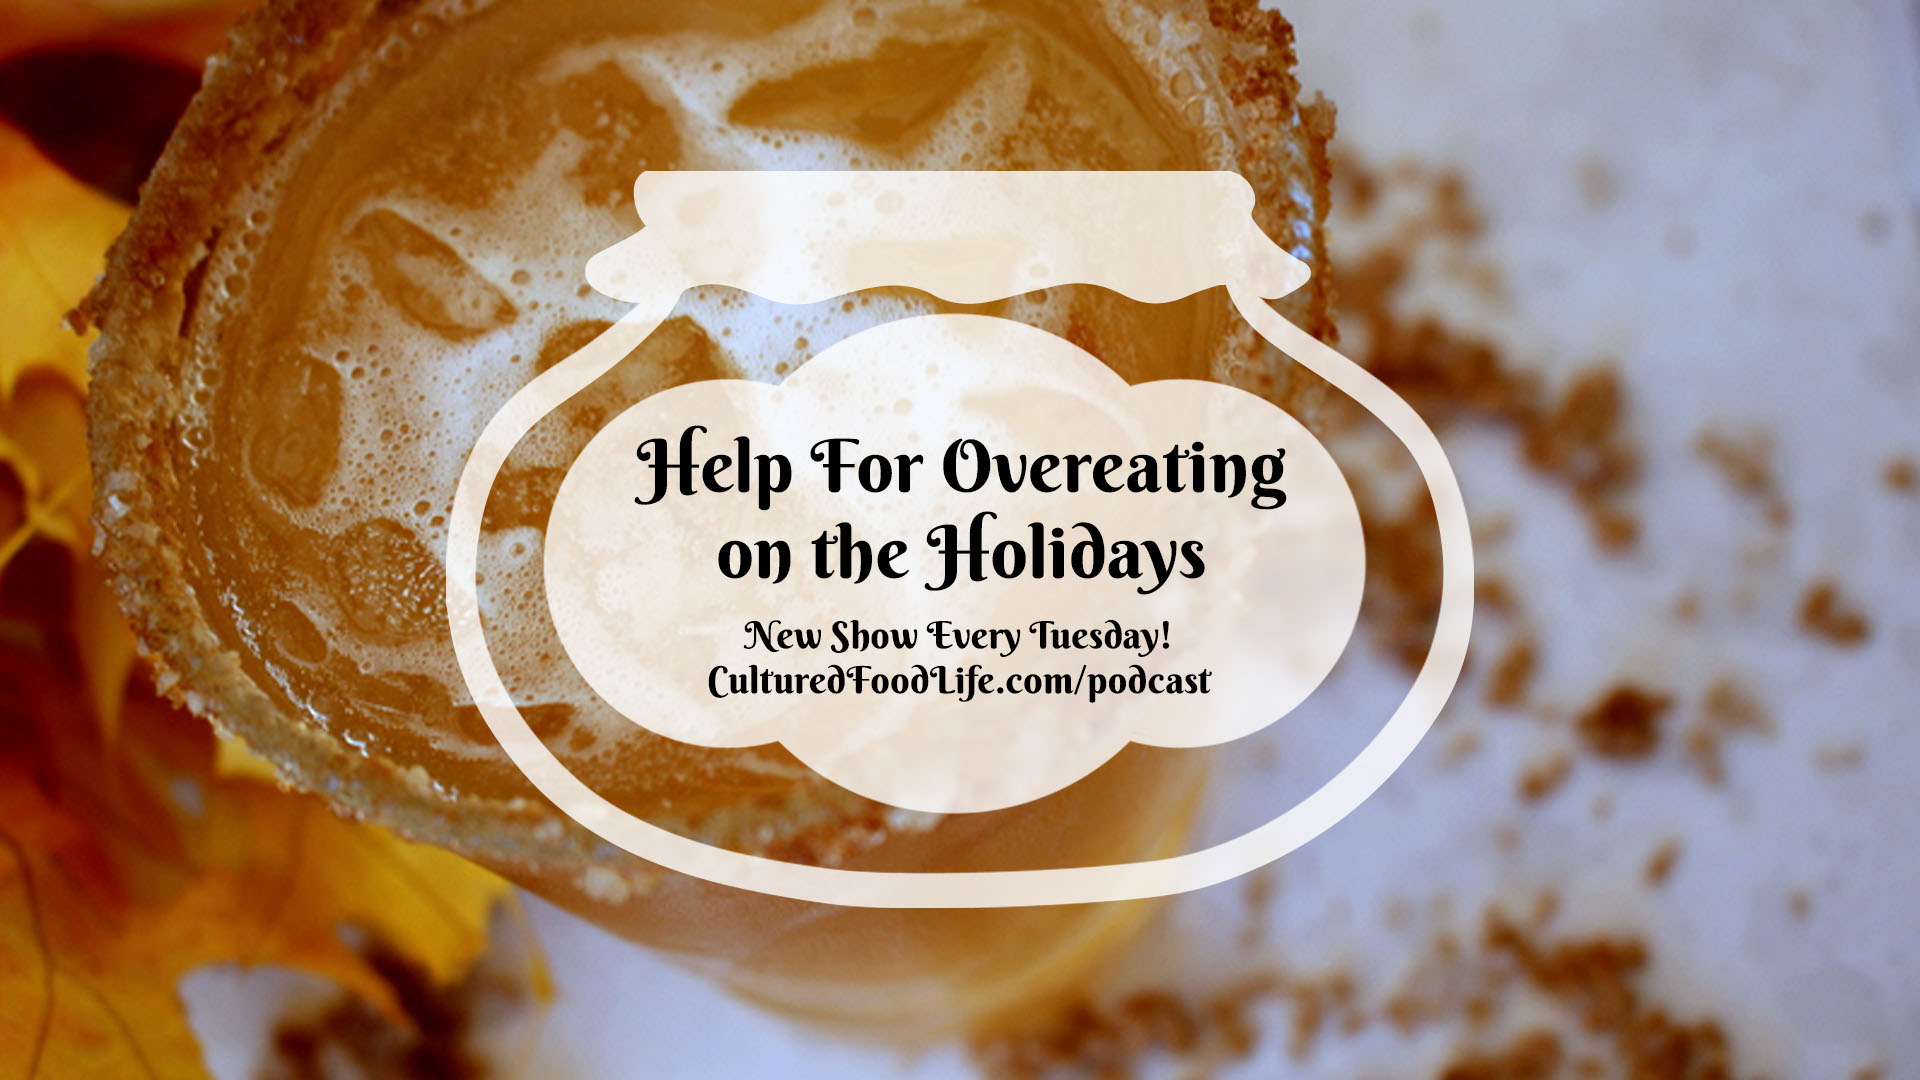 Help For Overeating on the Holidays Full